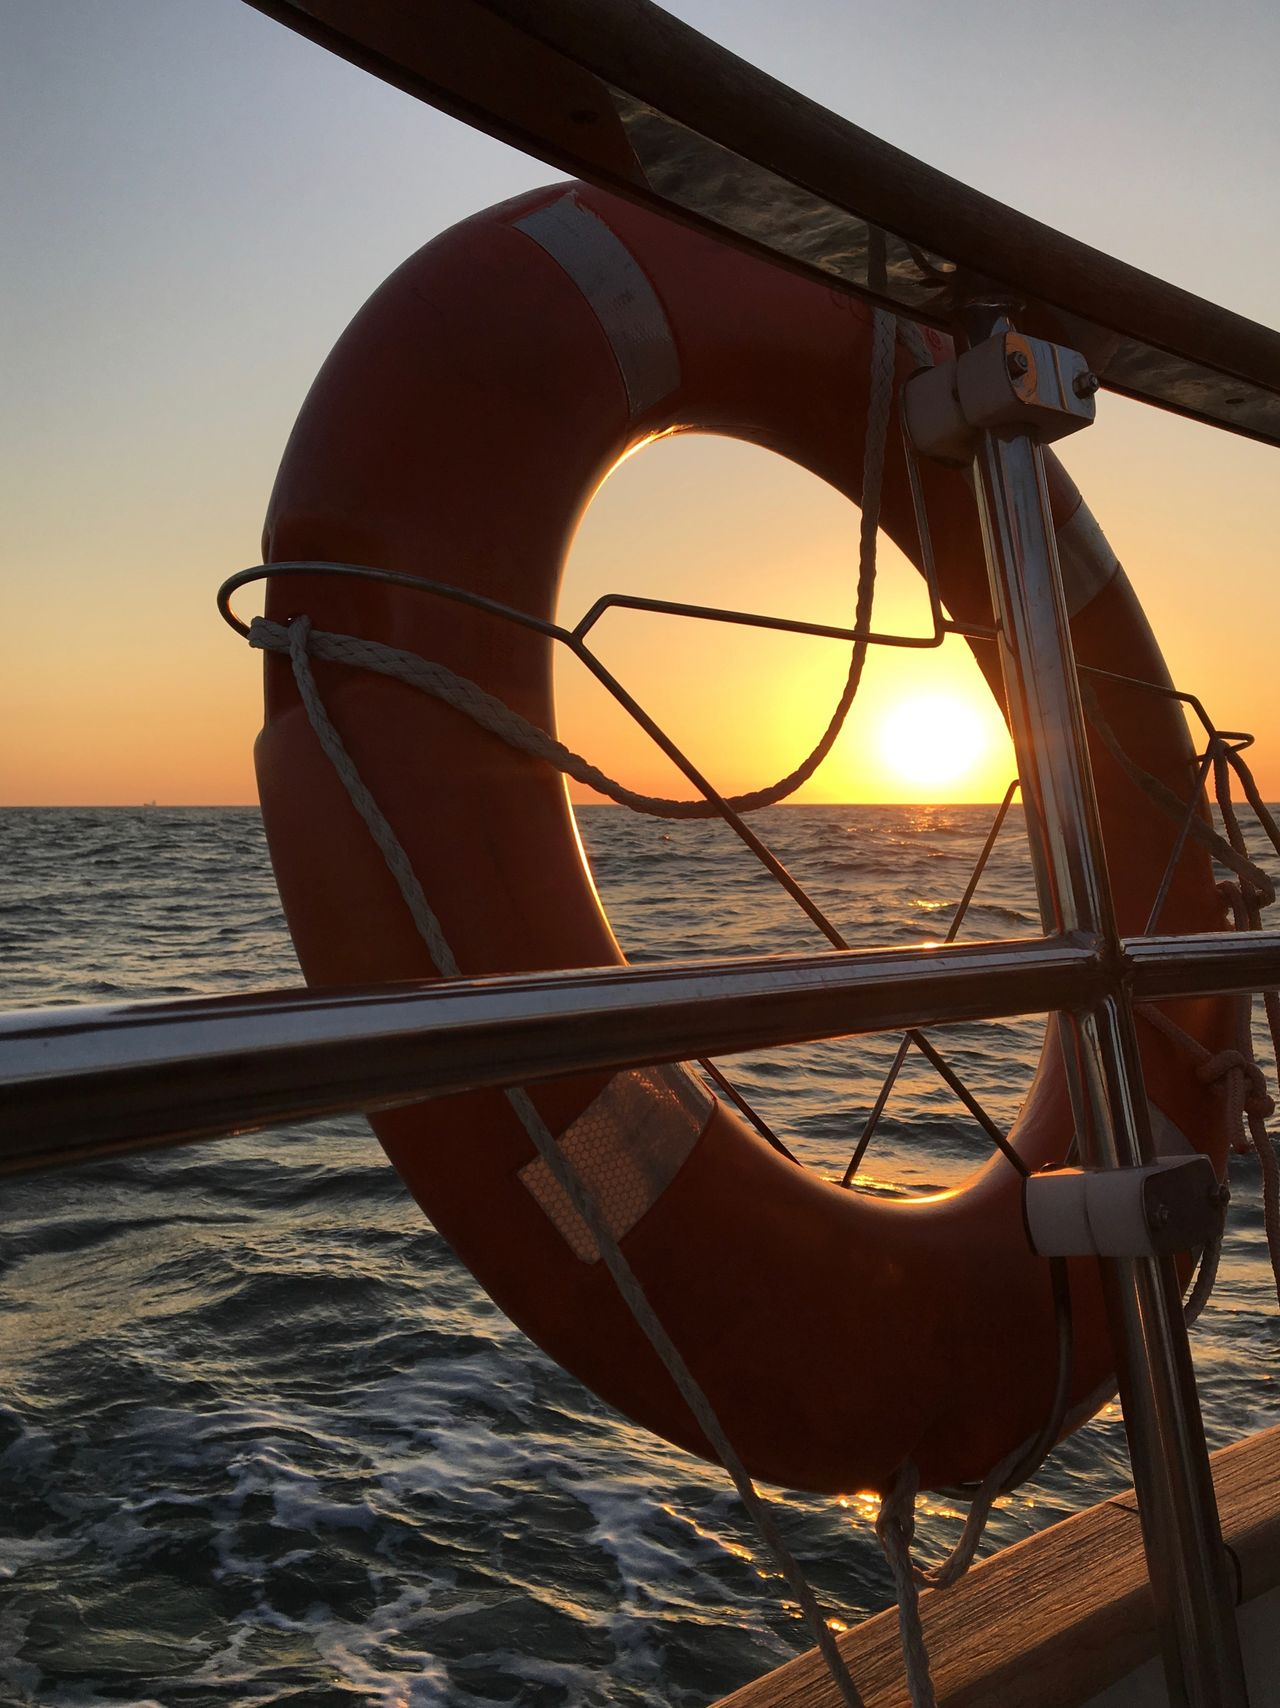 one of those beautiful days... Atlantic Ocean Boat Trip Easy Life Happiness Horizon Over Water Luck Nautical Equipment Nautical Vessel No People Ocean Portugal Sailing Sailing Boat Sea Sunset Tranquil Scene Travel Photography Traveling Vacations Water Yachting